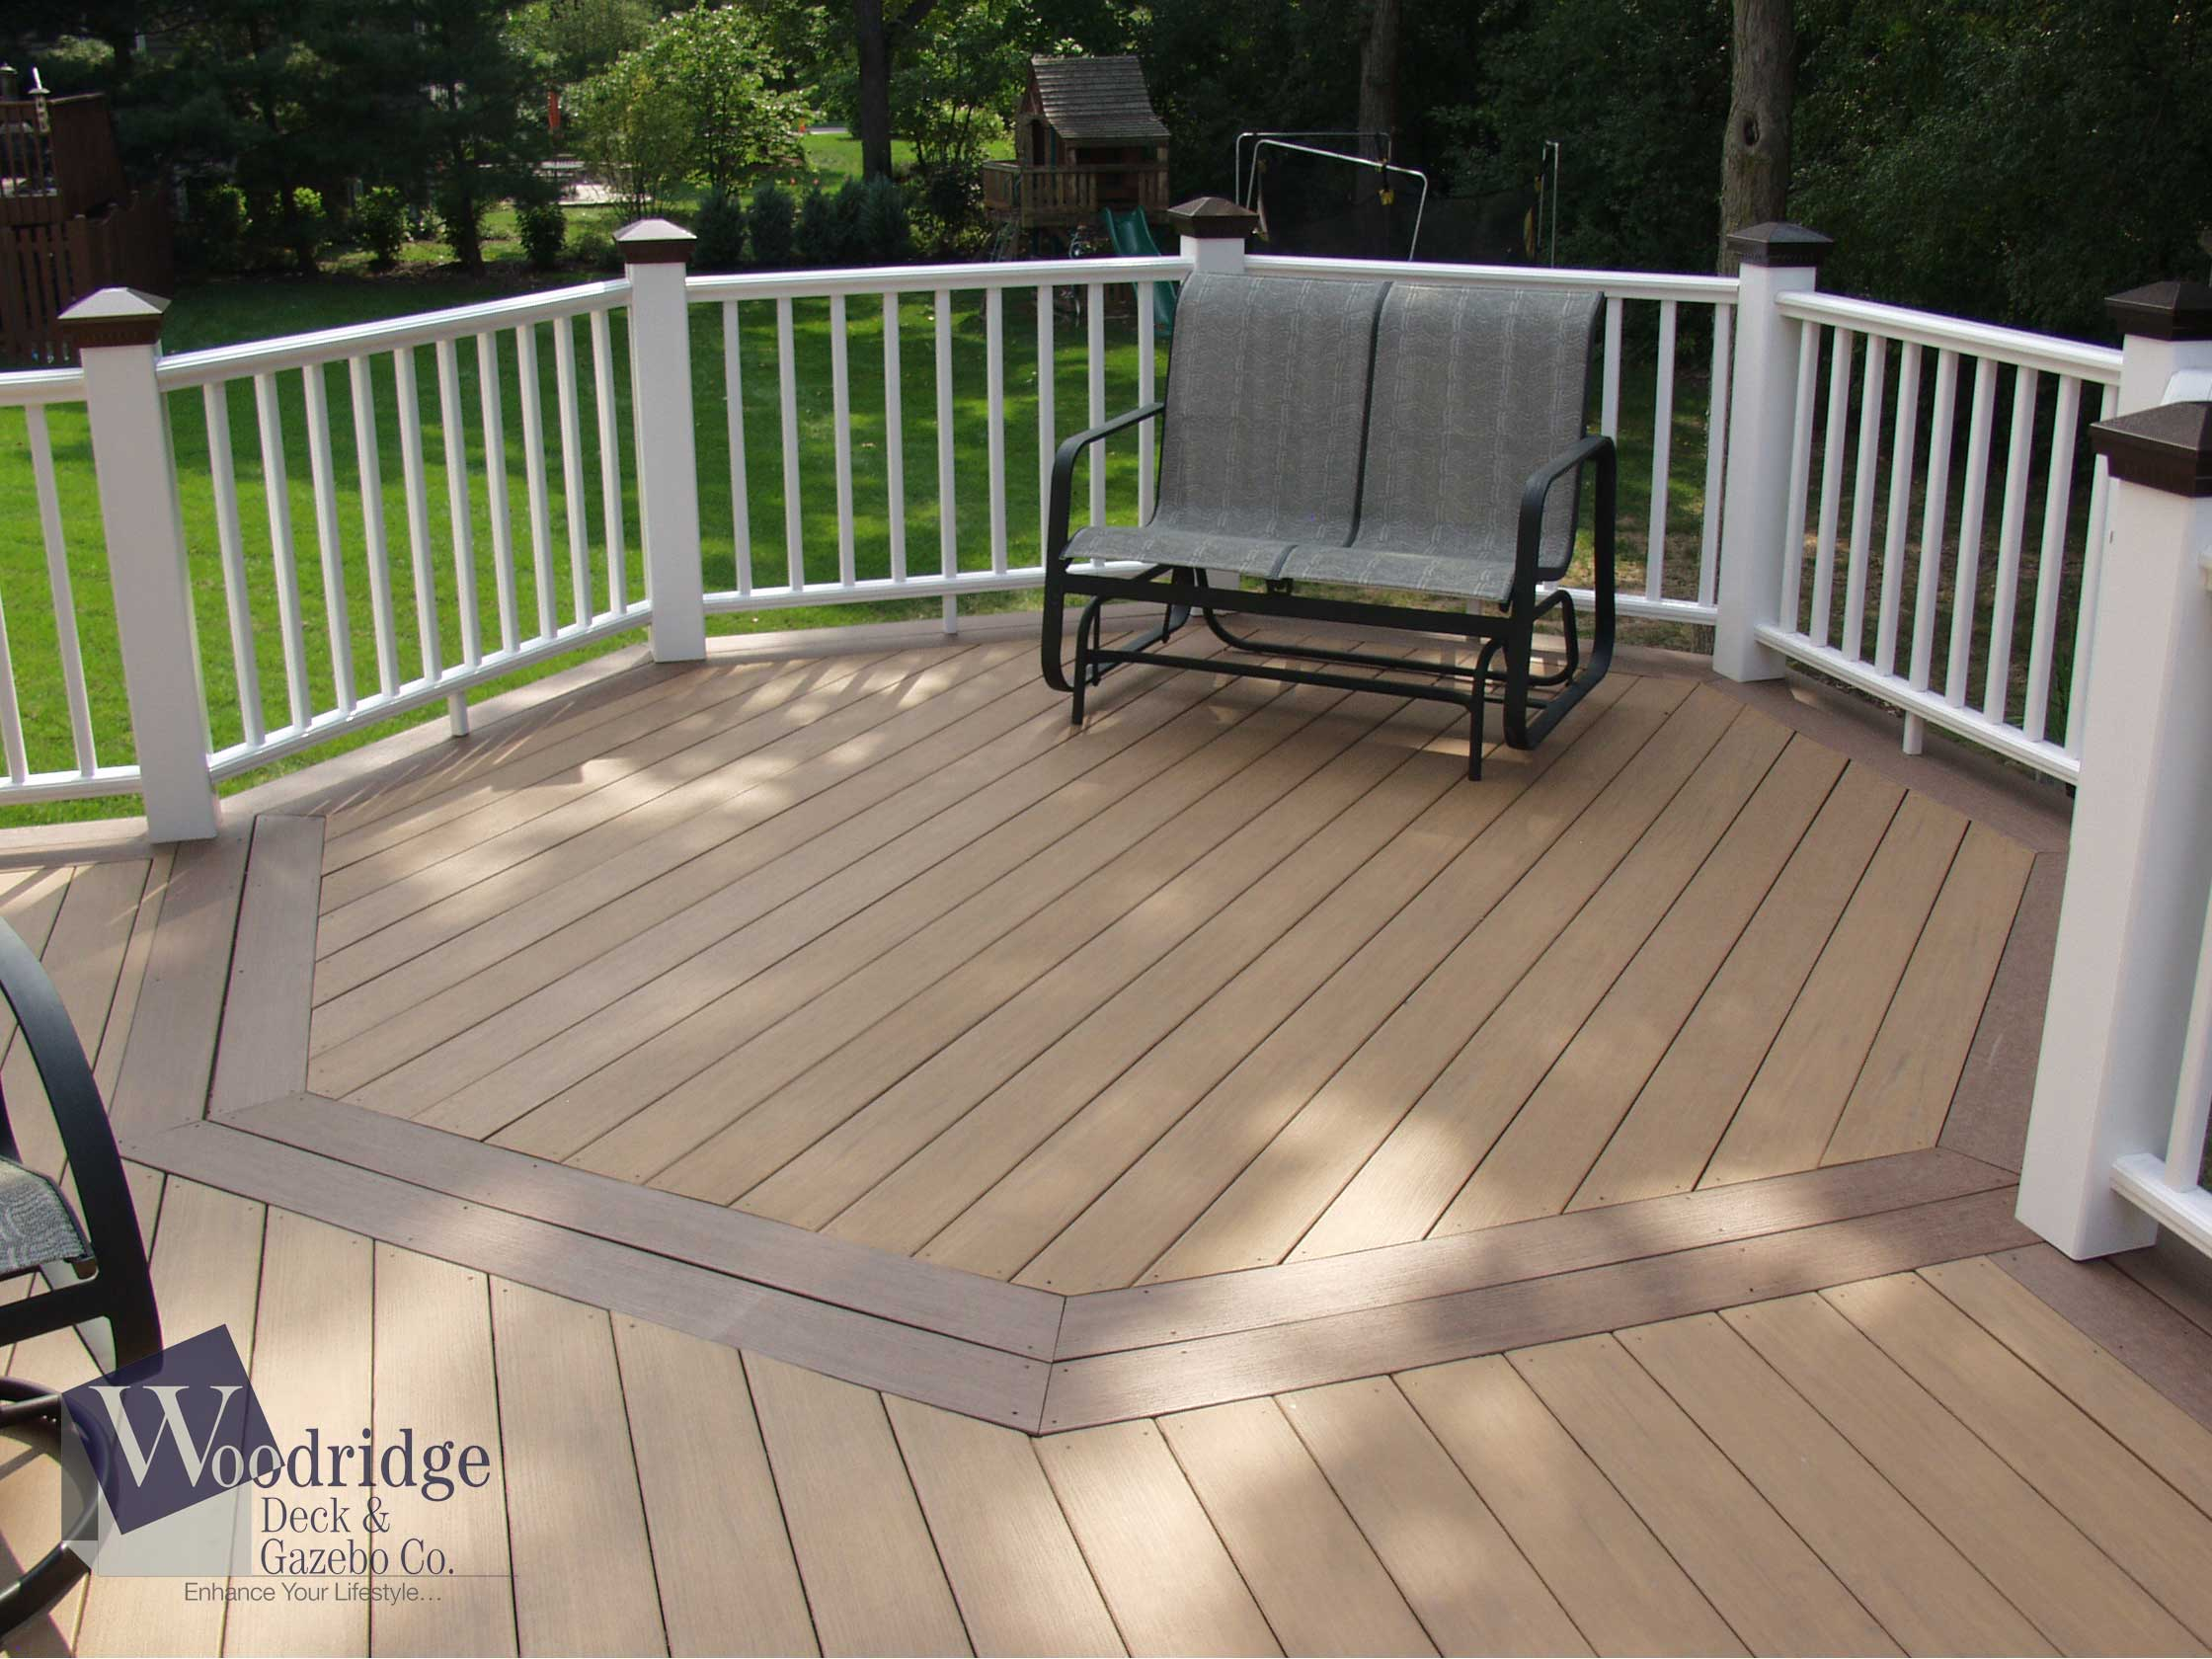 TT-02 PVC Deck Woodridge Deck & Gazebo Co.